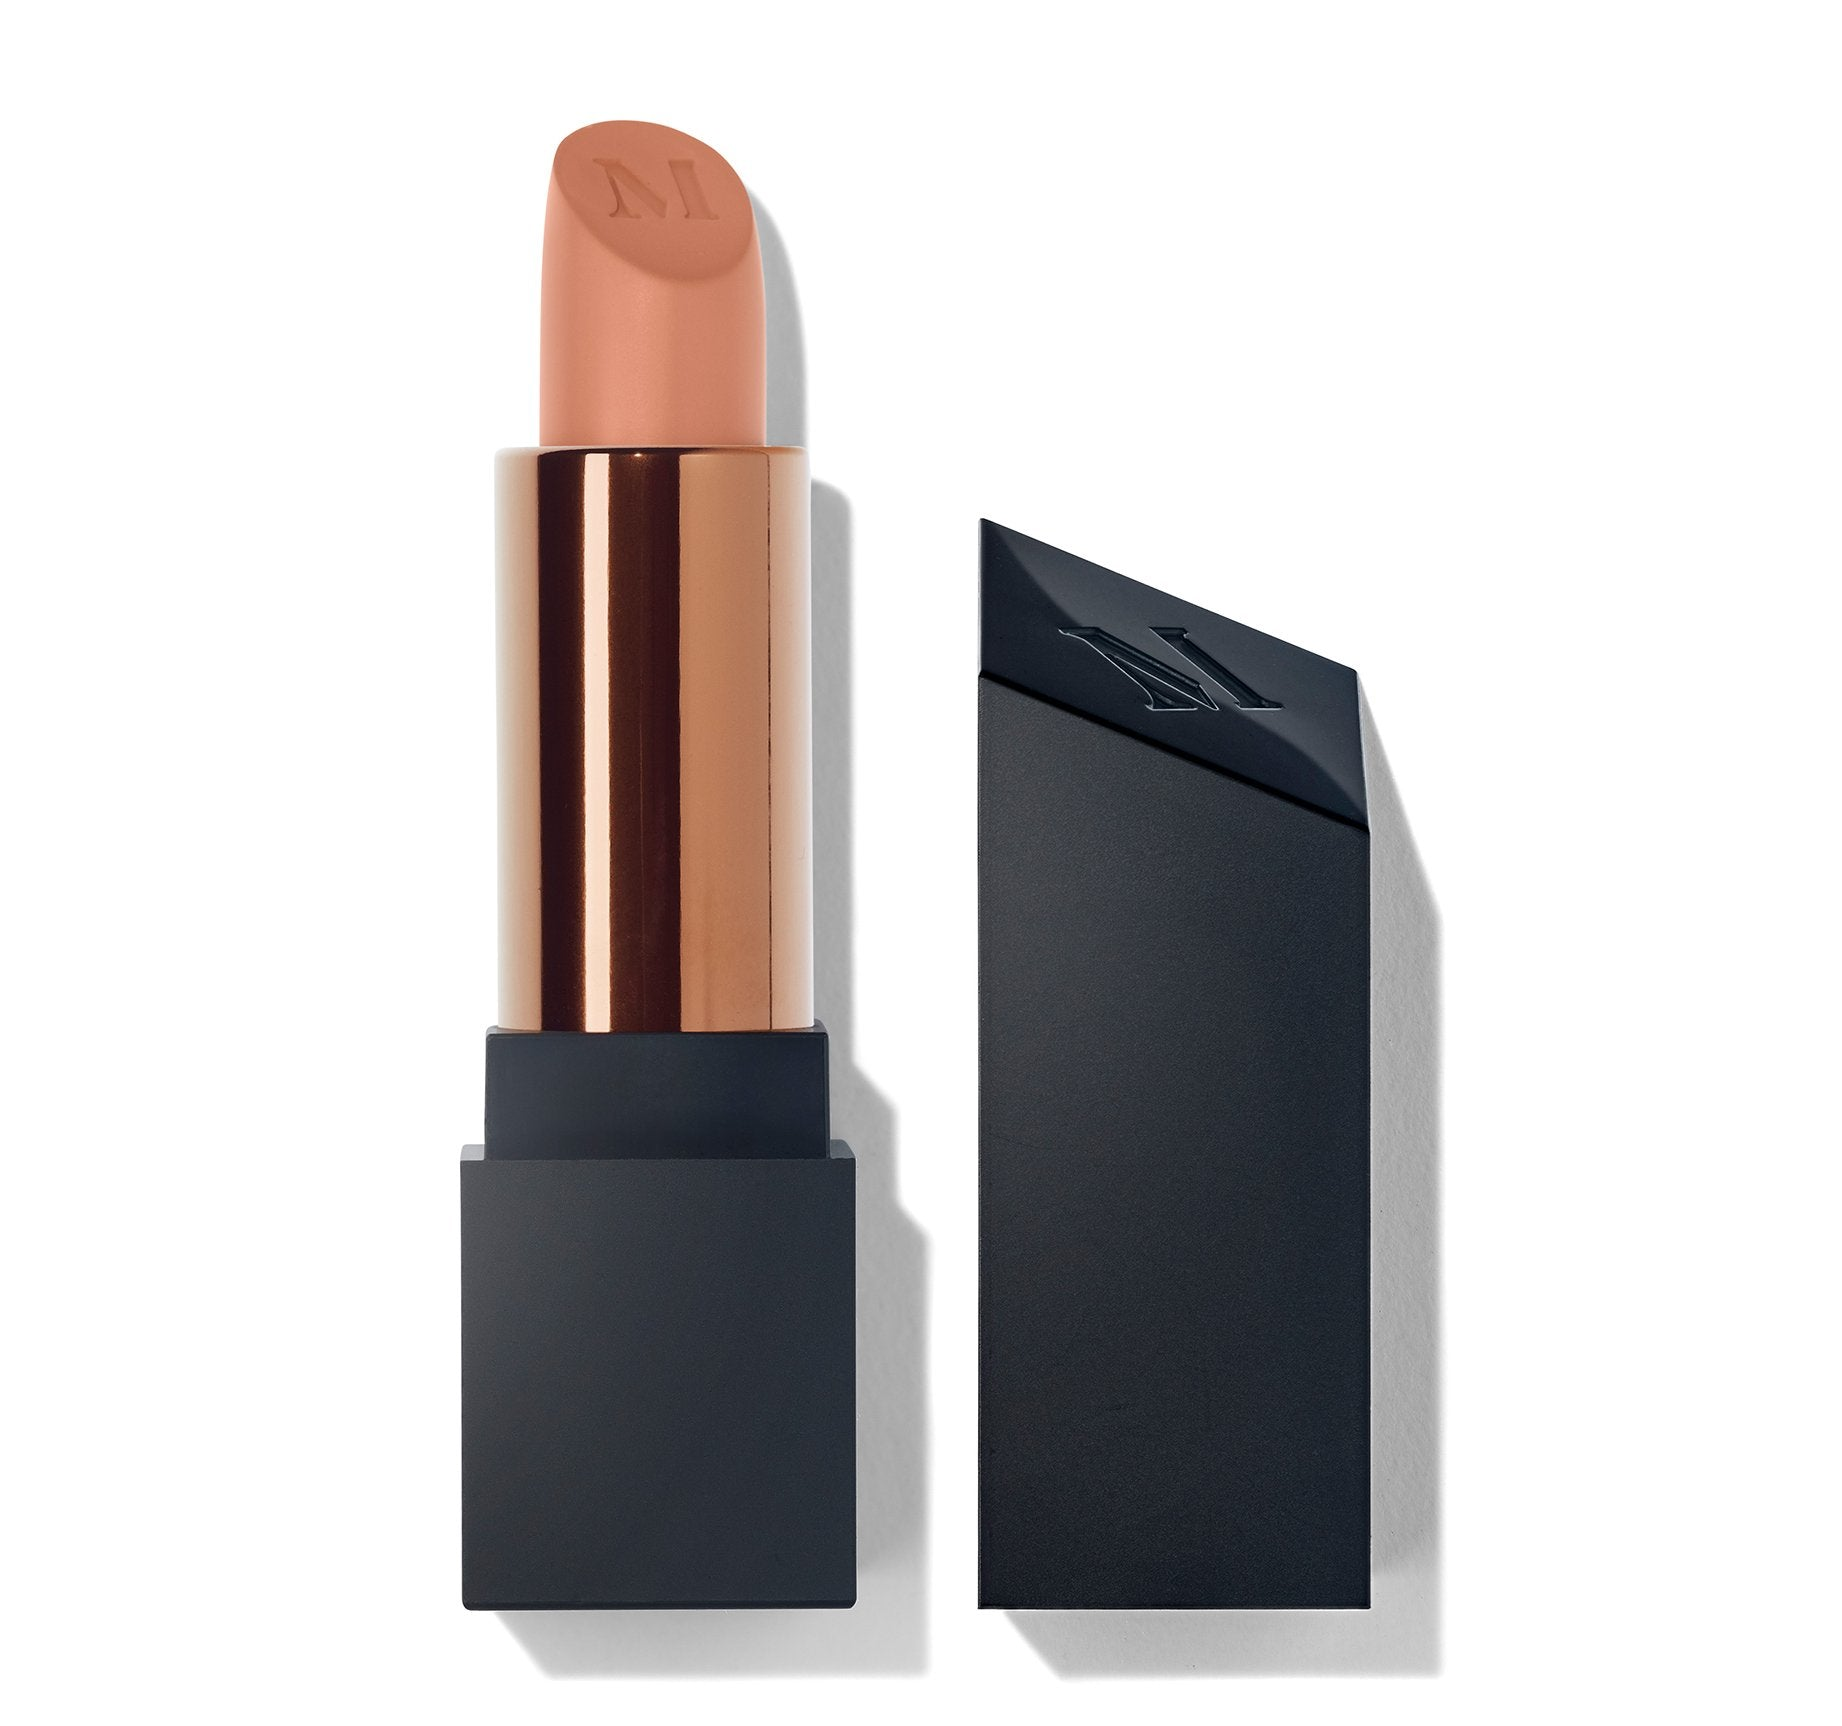 MEGA MATTE LIPSTICK - COMMIT, view larger image